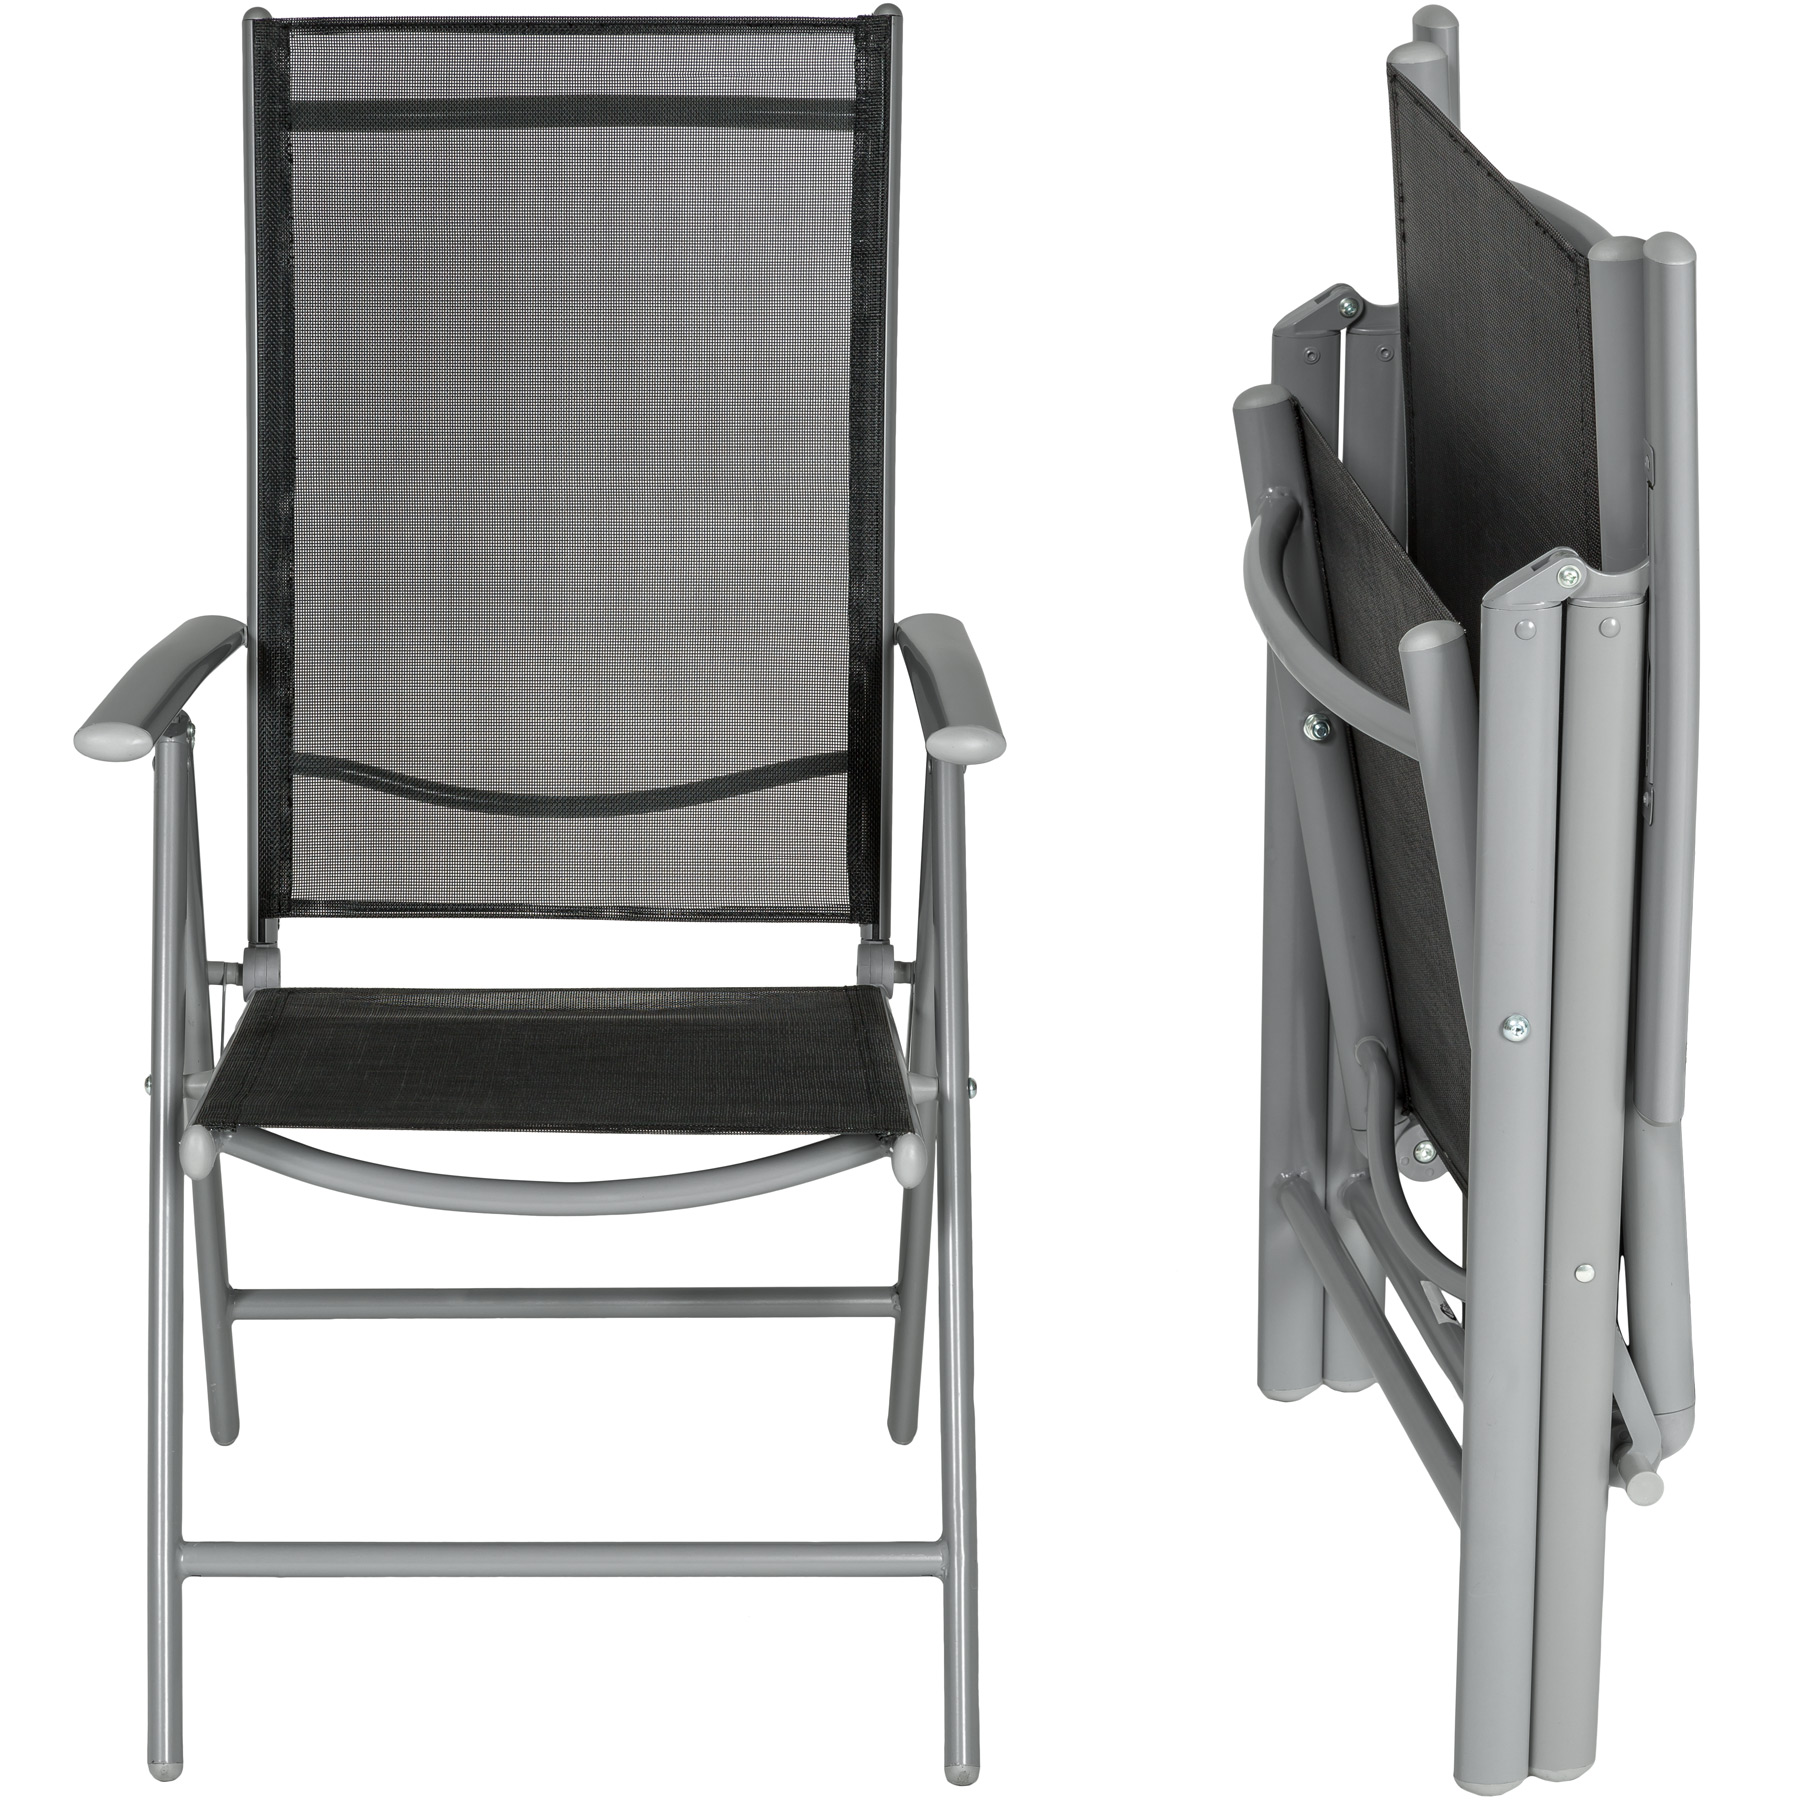 set alu klappstuhl gartenstuhl aluminium campingstuhl hochlehner ebay. Black Bedroom Furniture Sets. Home Design Ideas